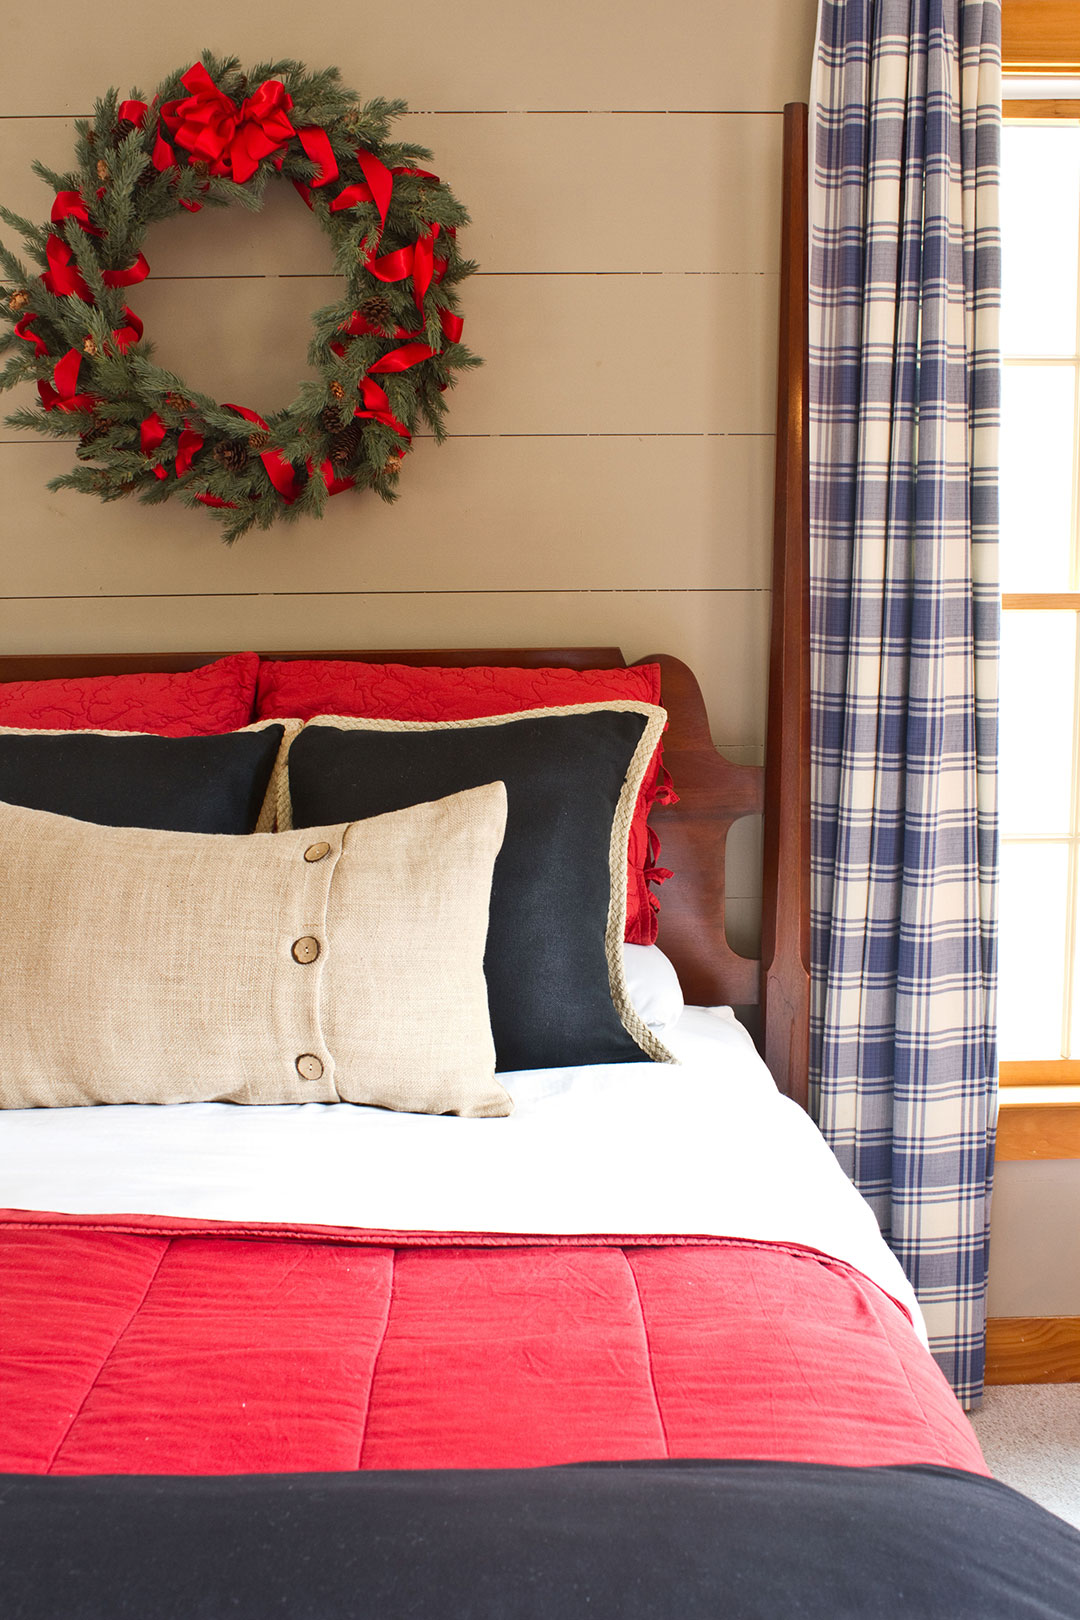 Gray shiplap wood paneled walls with wreath hanging over a guest bed for overnight holiday guests.